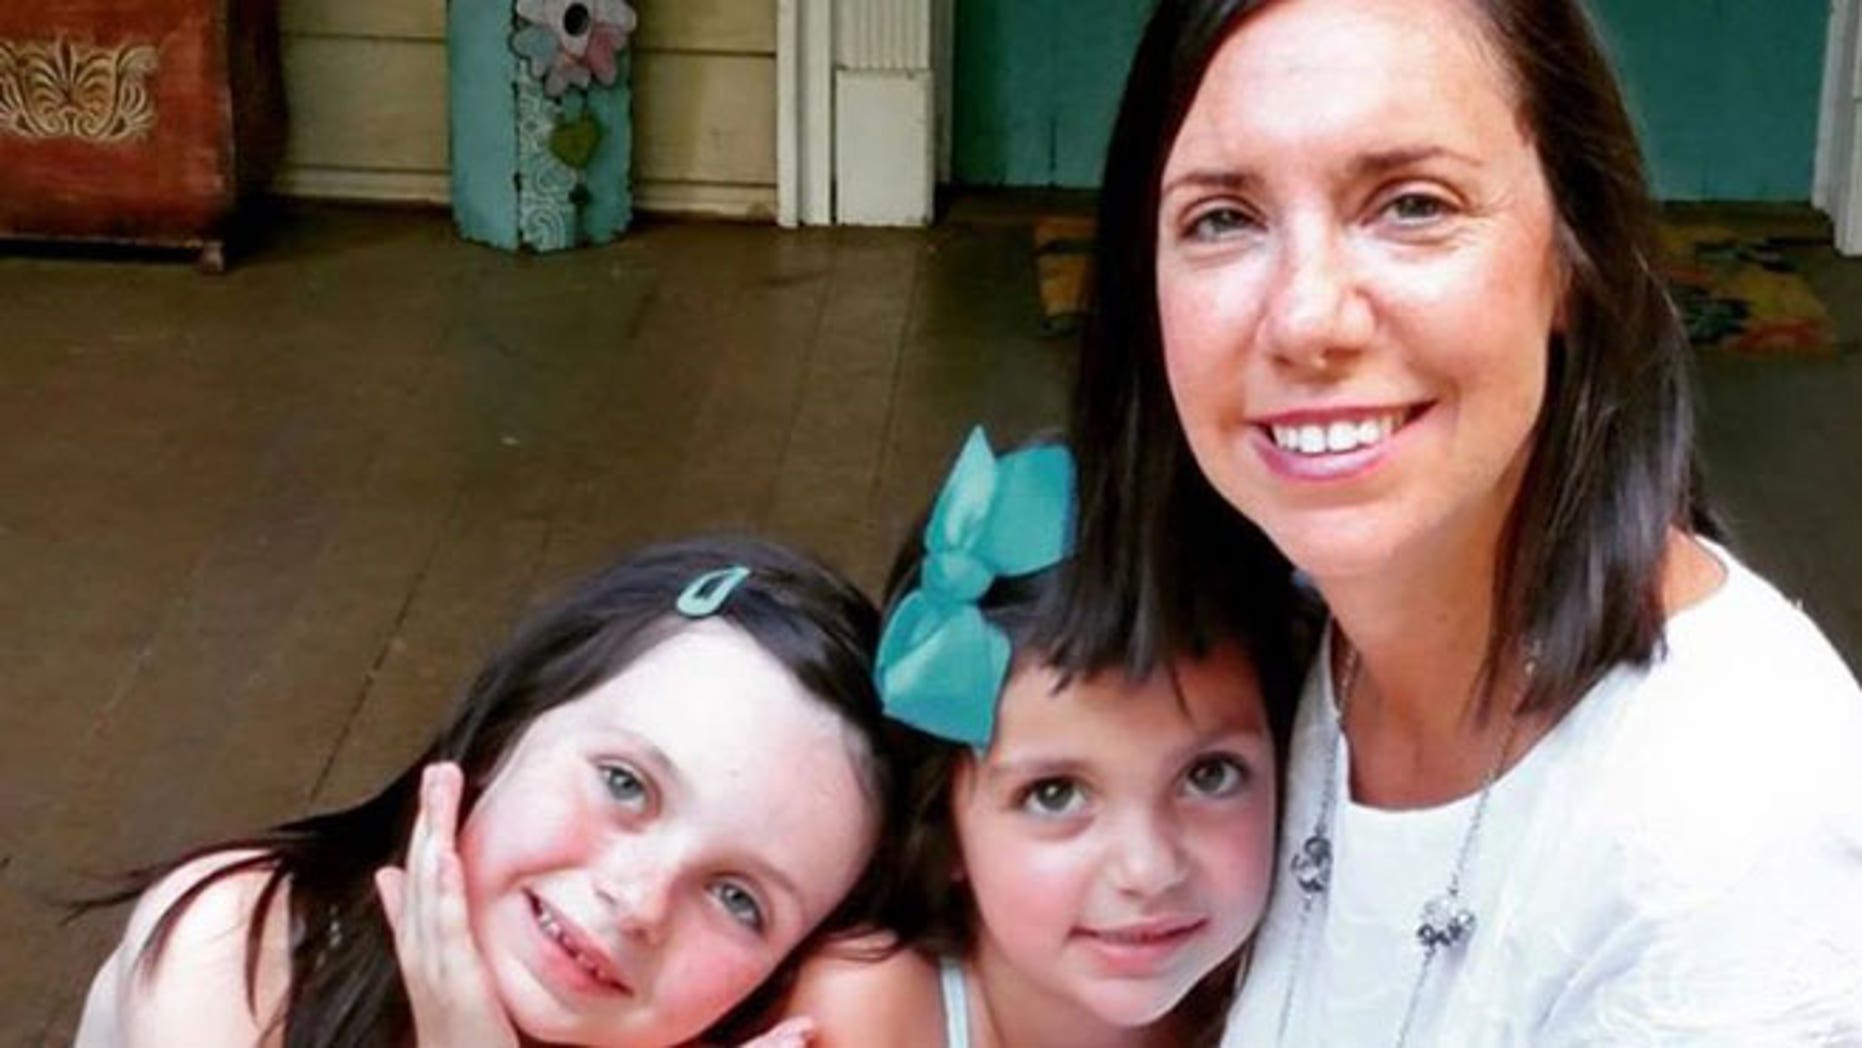 Stephanie Ballard is pictured with her two daughters, Riley, 6, and Reese, 4.